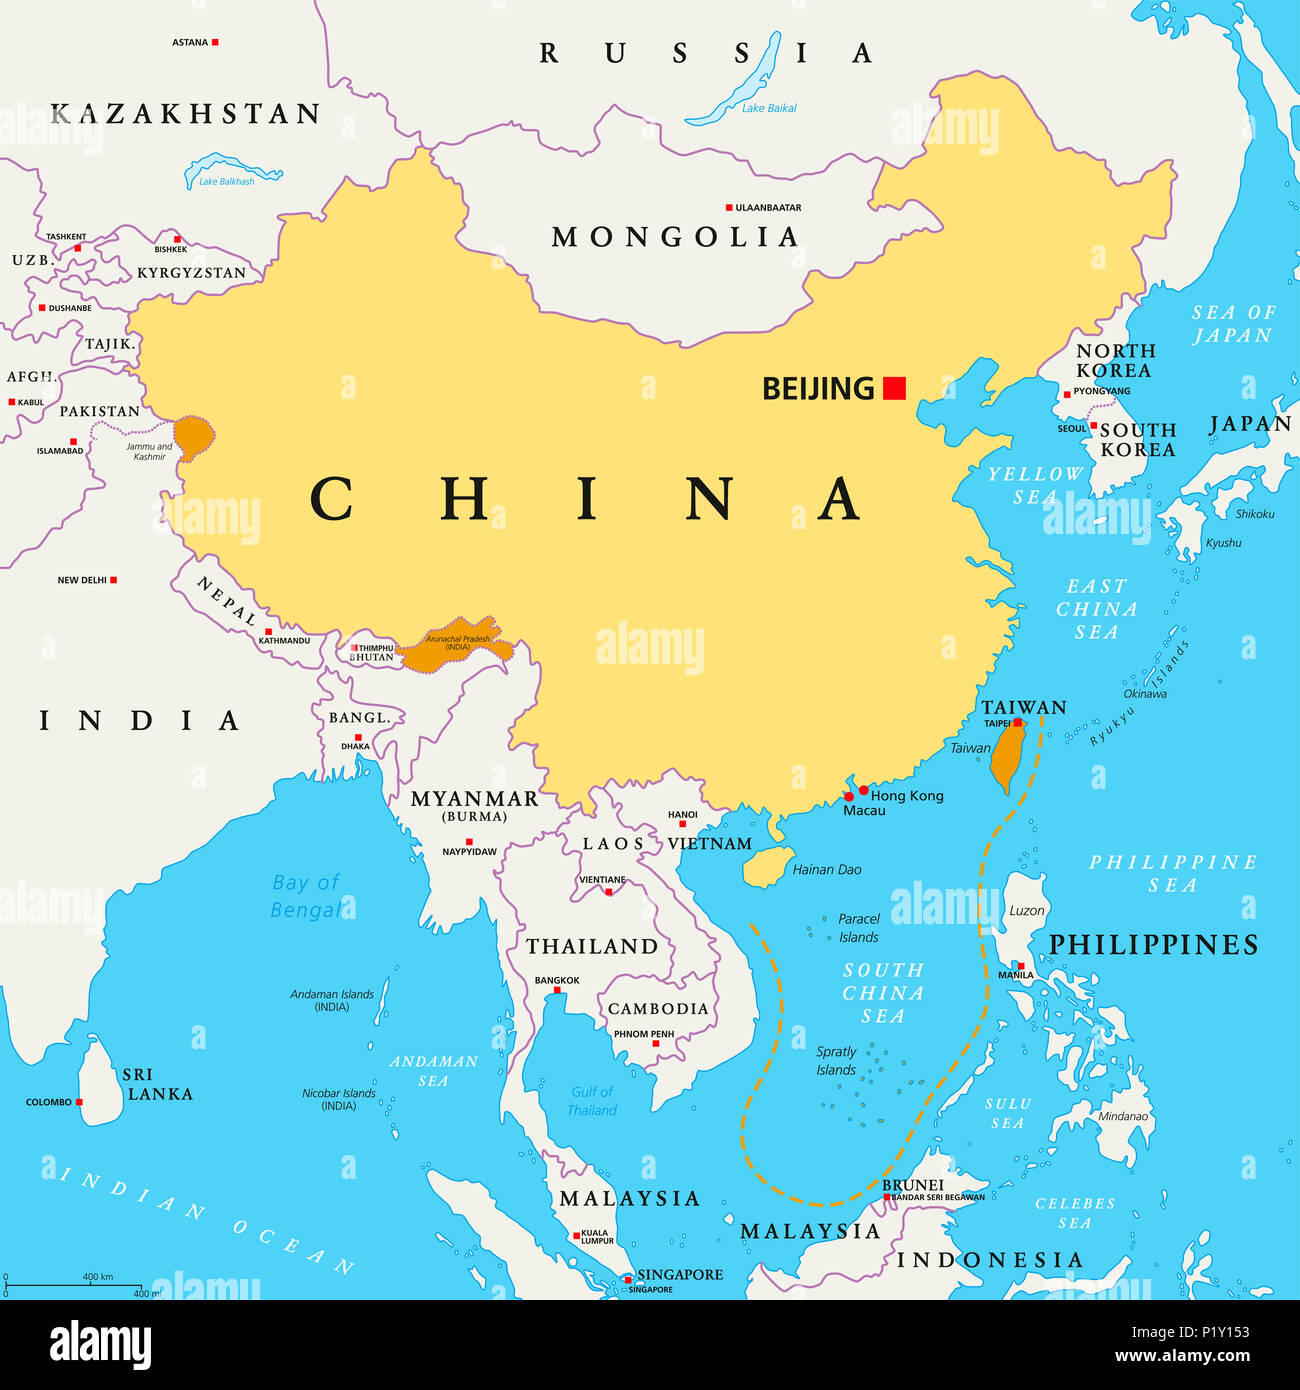 Map Of China And Surrounding Areas.Peoples Republic Of China Prc Political Map Area Controlled By